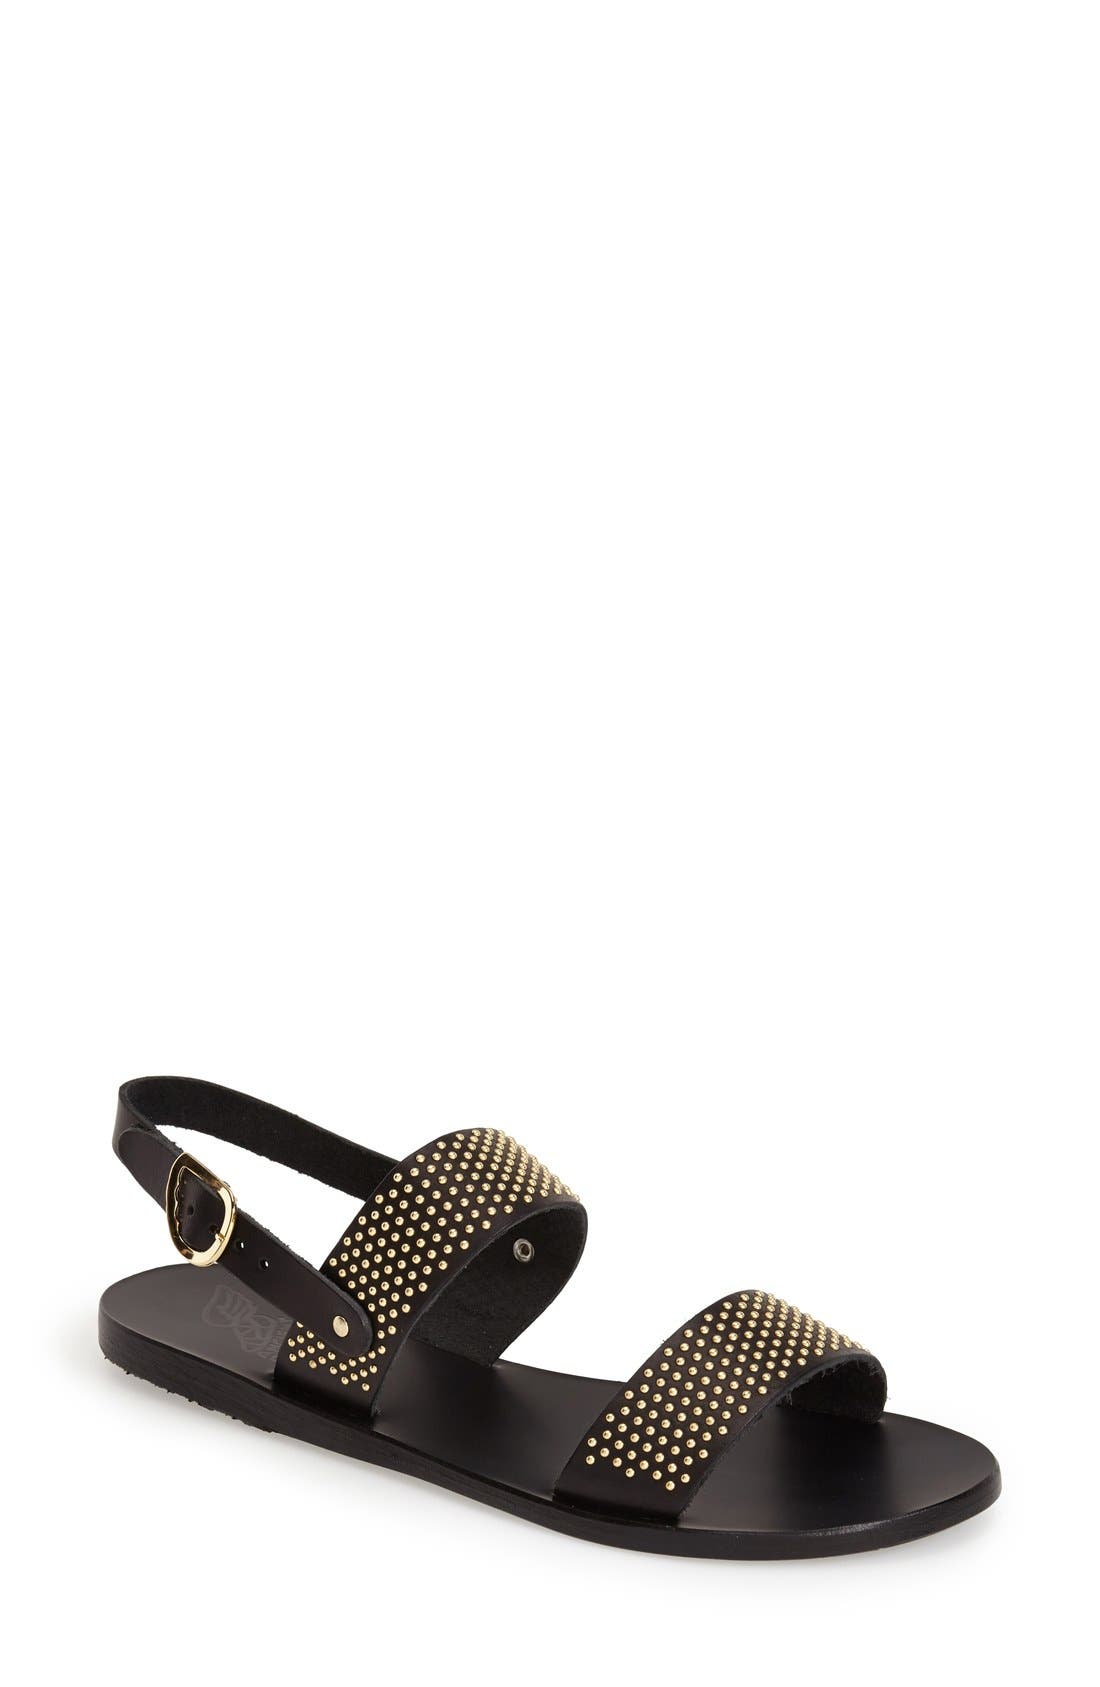 Main Image - Ancient Greek Sandals 'Dinami' Studded Double Band Sandal (Women)